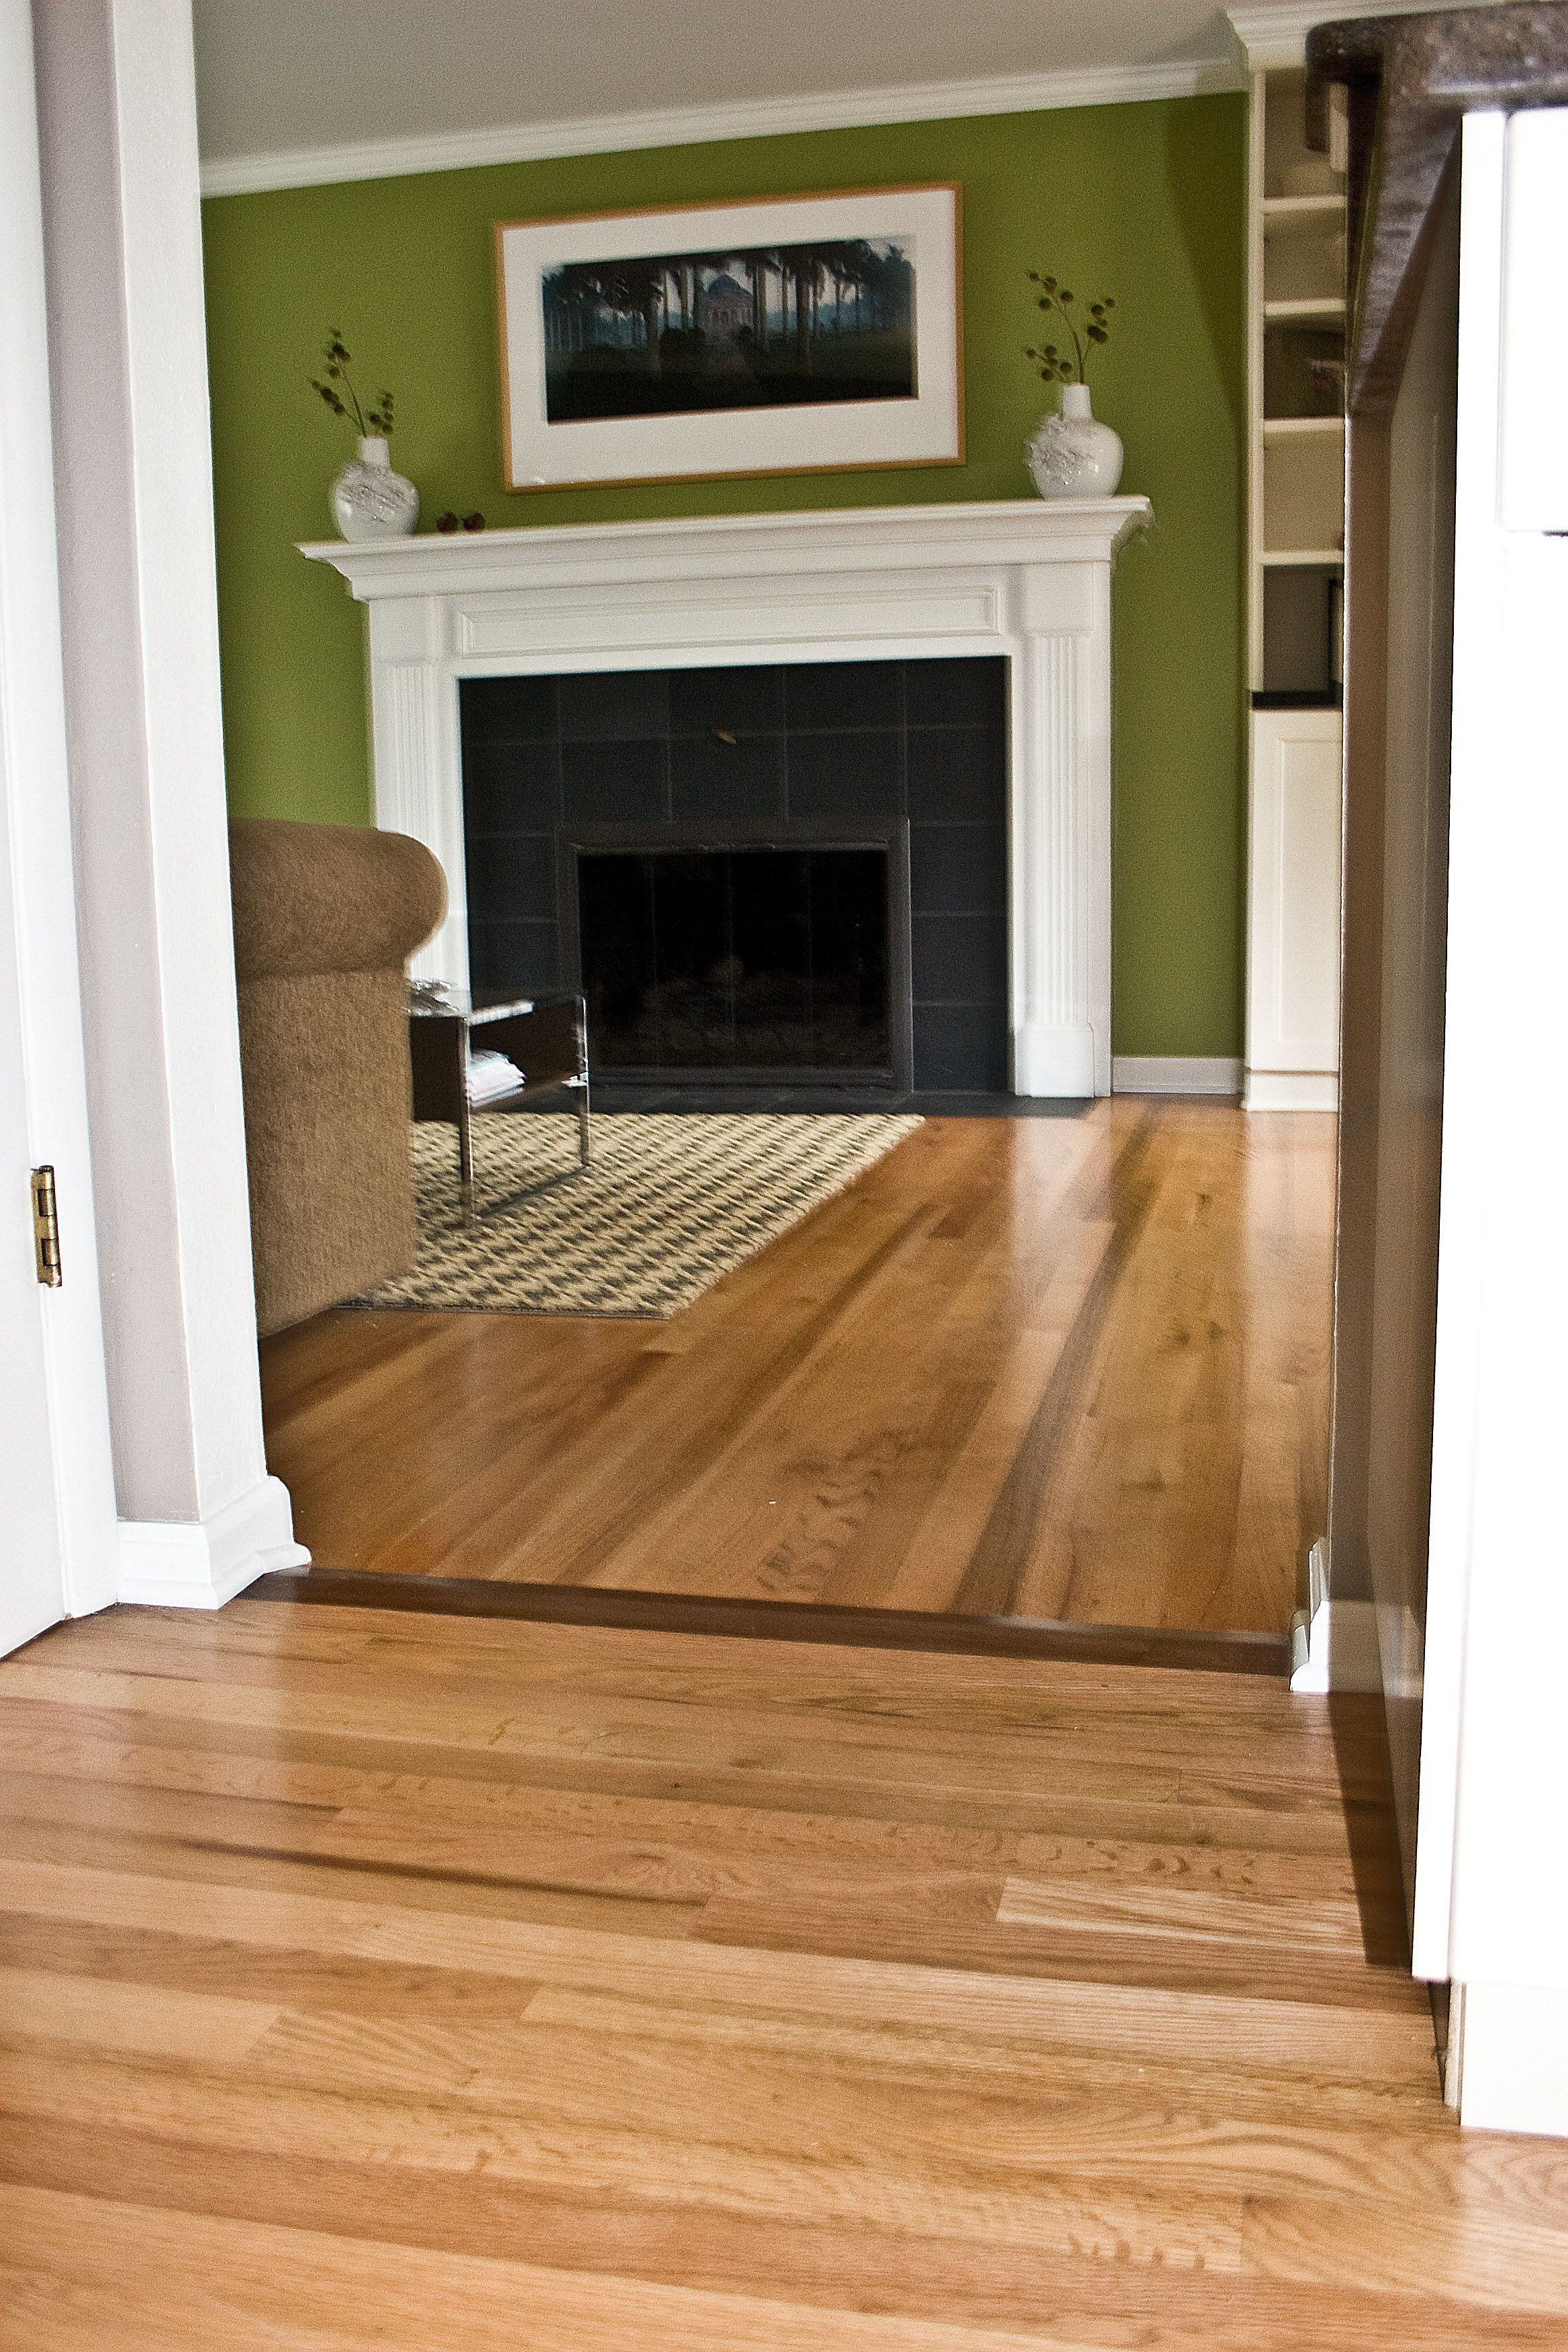 Hardwood Flooring Edinburgh Of Phoenix Flooring Good Idea for Adding Hard to Match Hardwoods Floor for Phoenix Flooring Good Idea for Adding Hard to Match Hardwoods